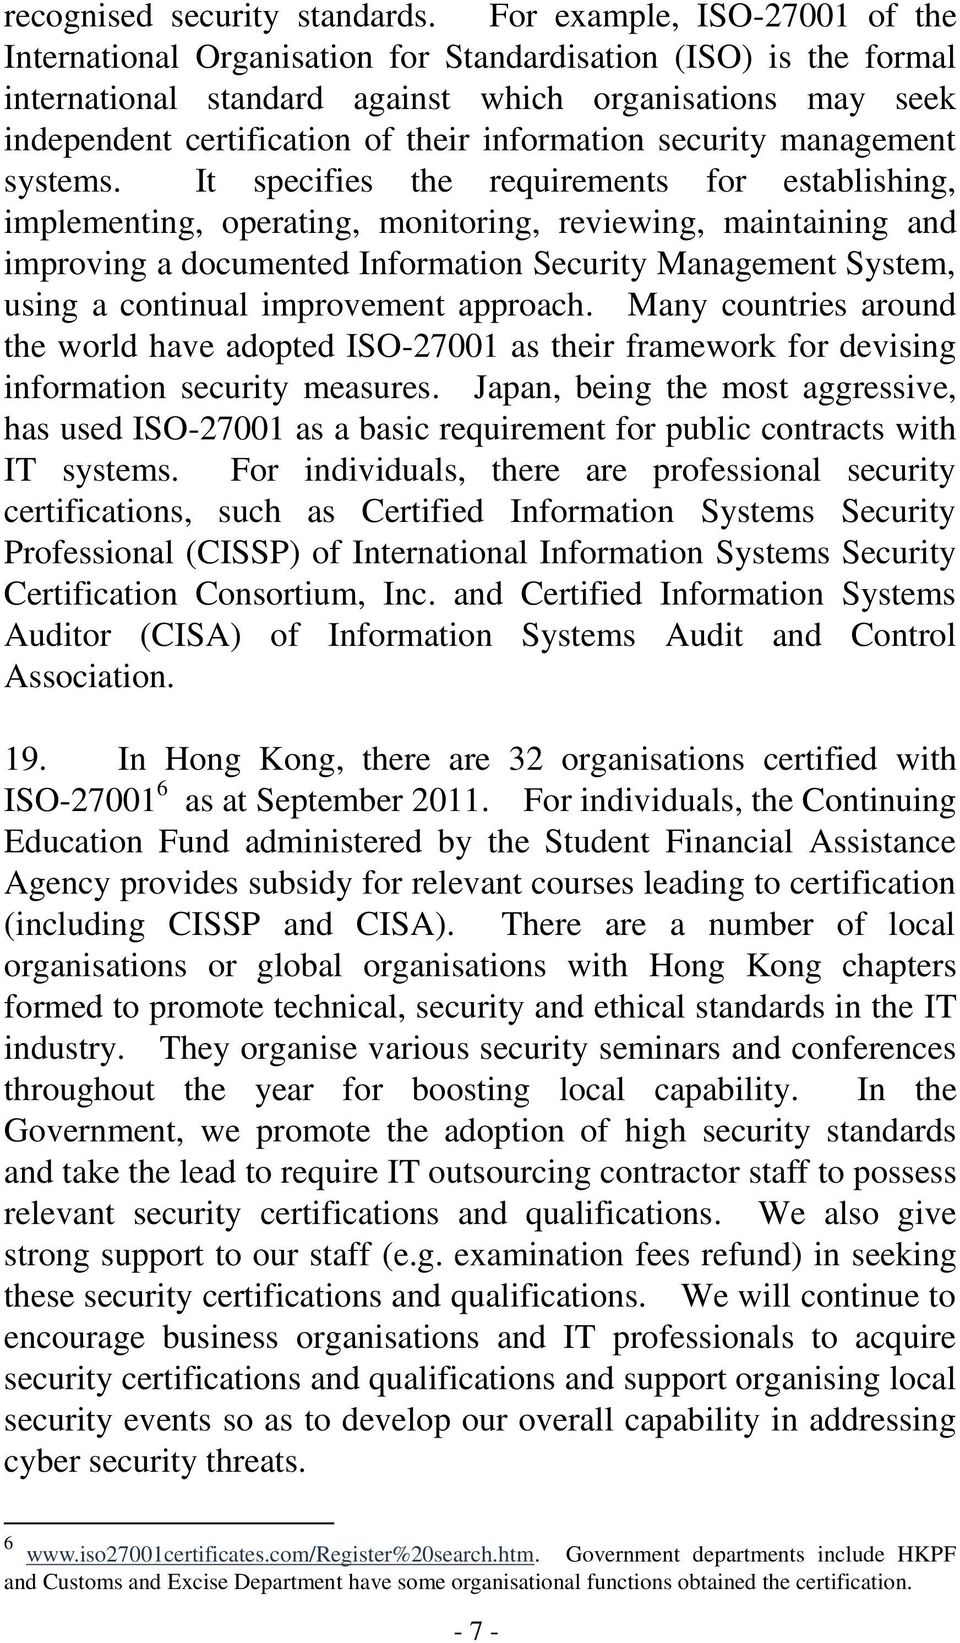 information security management systems.